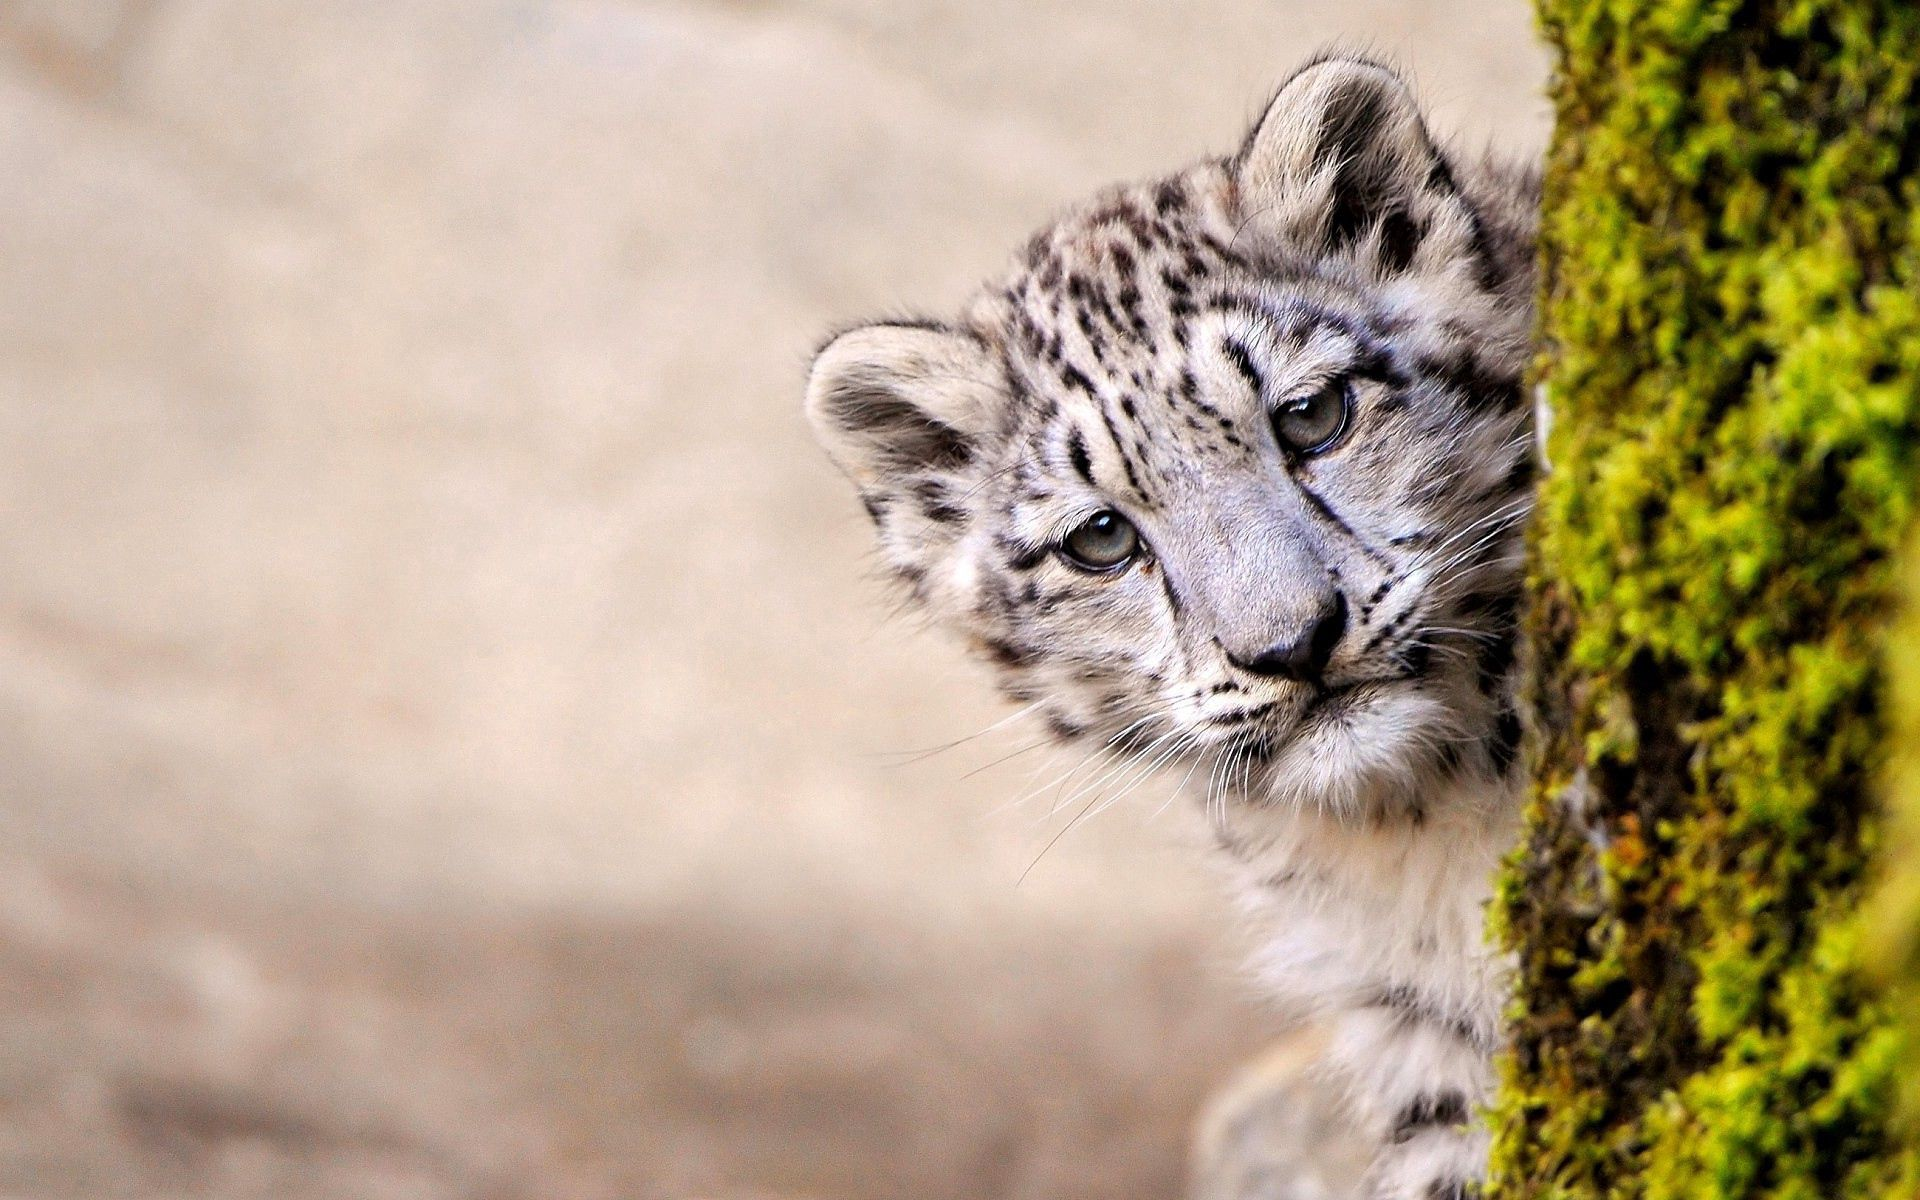 142166 Screensavers and Wallpapers Young for phone. Download Animals, Snow Leopard, Wood, Young, Tree, Muzzle, Joey, Peek Out, Look Out pictures for free